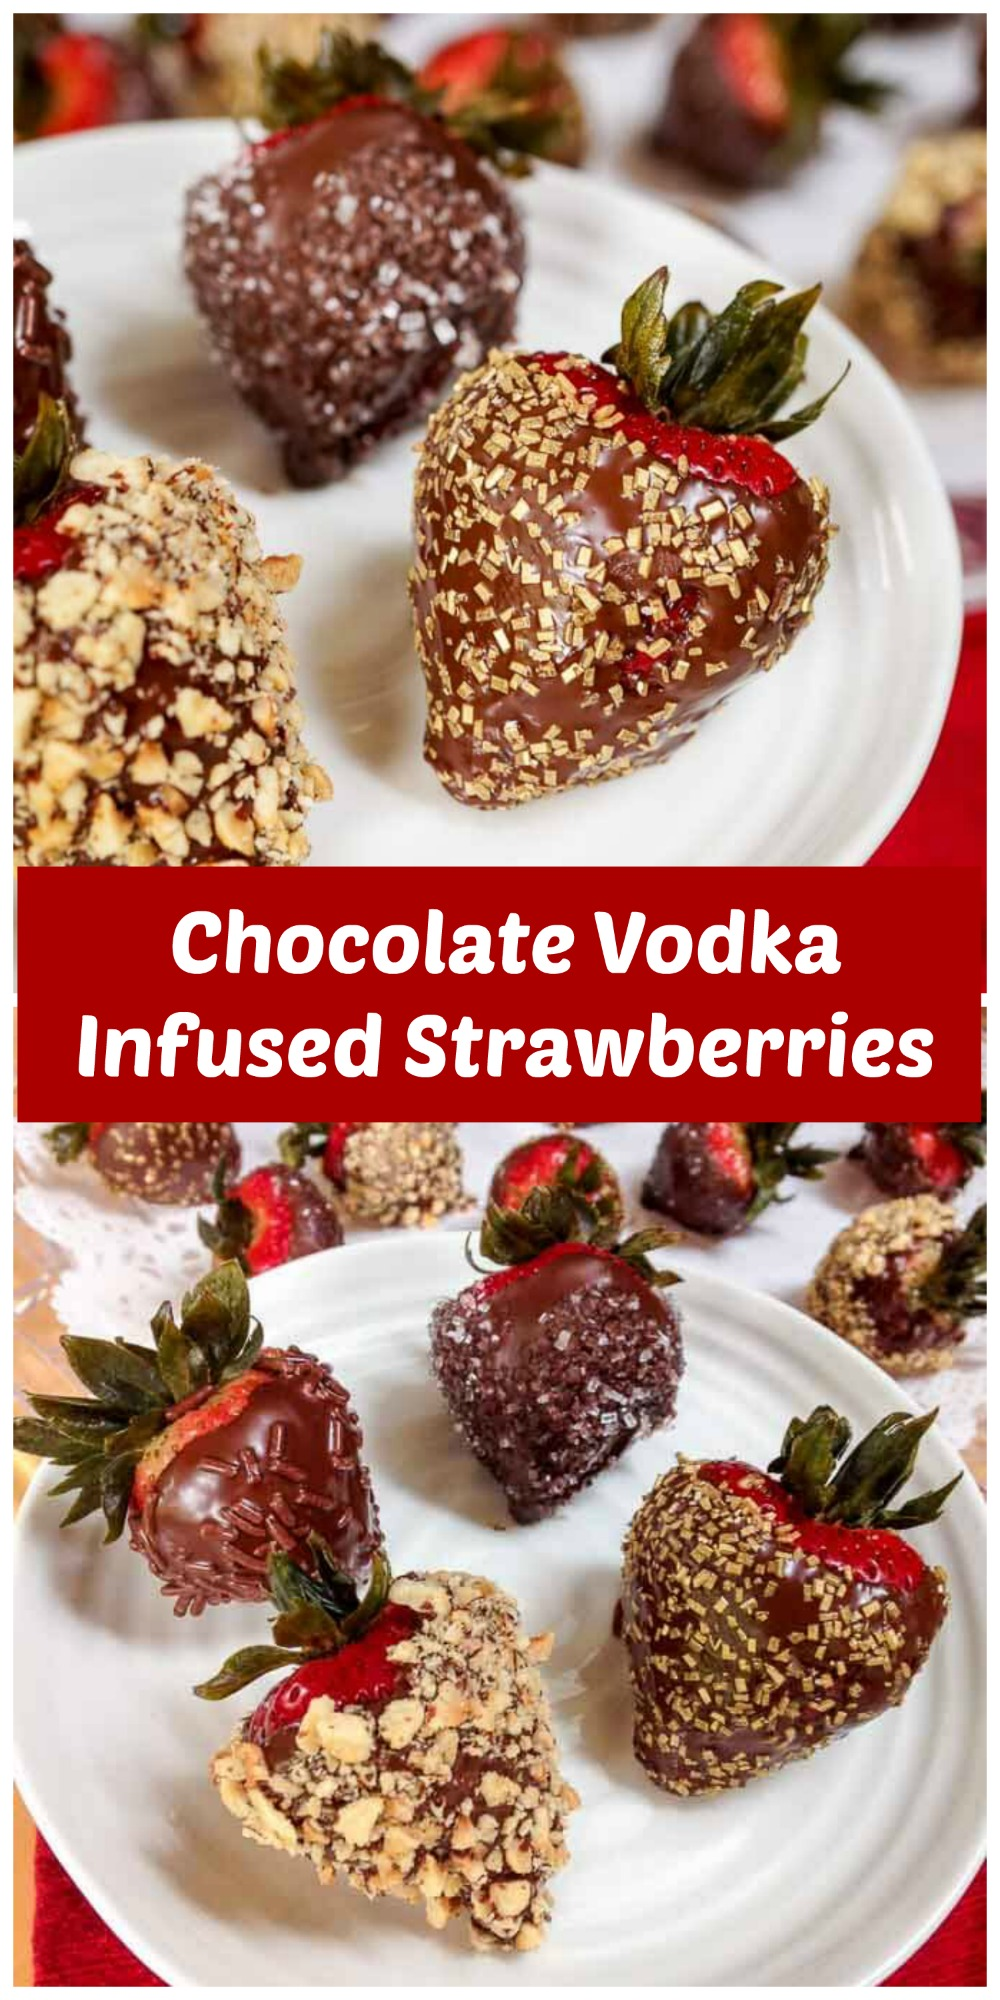 Chocolate Vodka Infused Strawberries is an appetizer that will get the party started. They are just as pretty to look at as they are delicious to eat! #appetizer #PartyFood | Easy Party Food